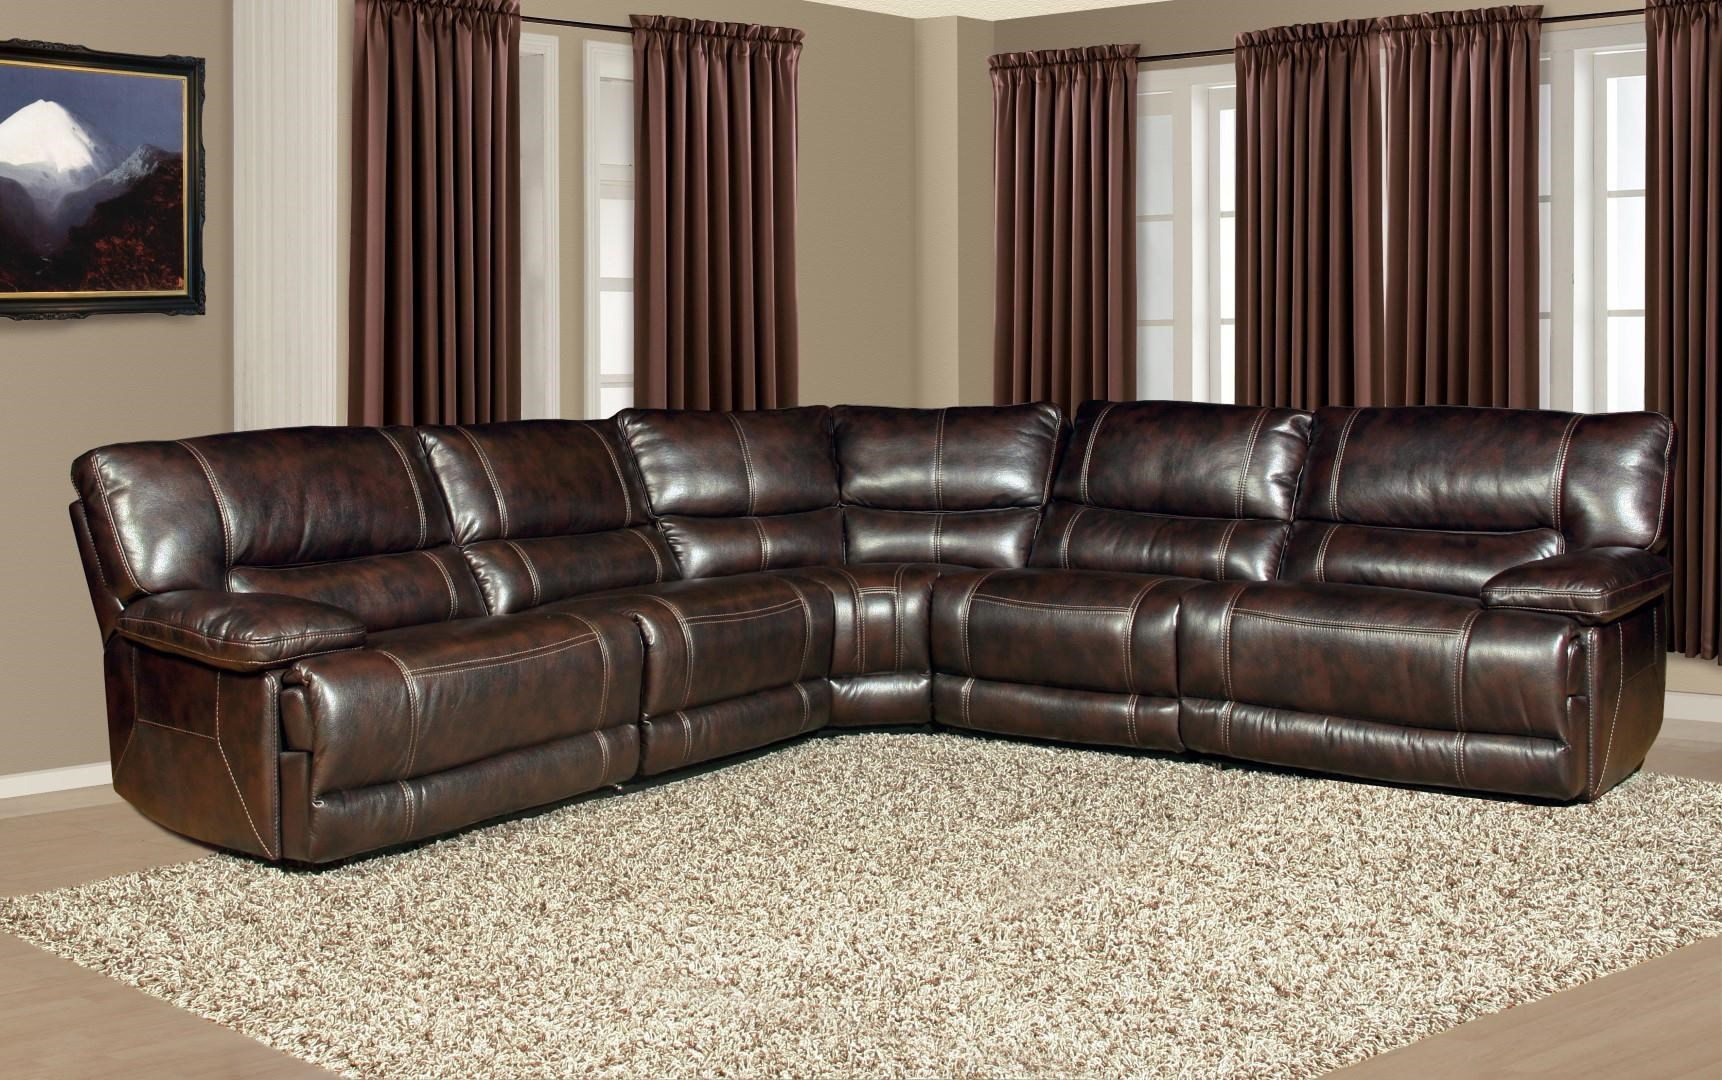 Parker Living Pegasus 5 Seater Power Reclining Sectional Sofa With Large  Pillow Arms